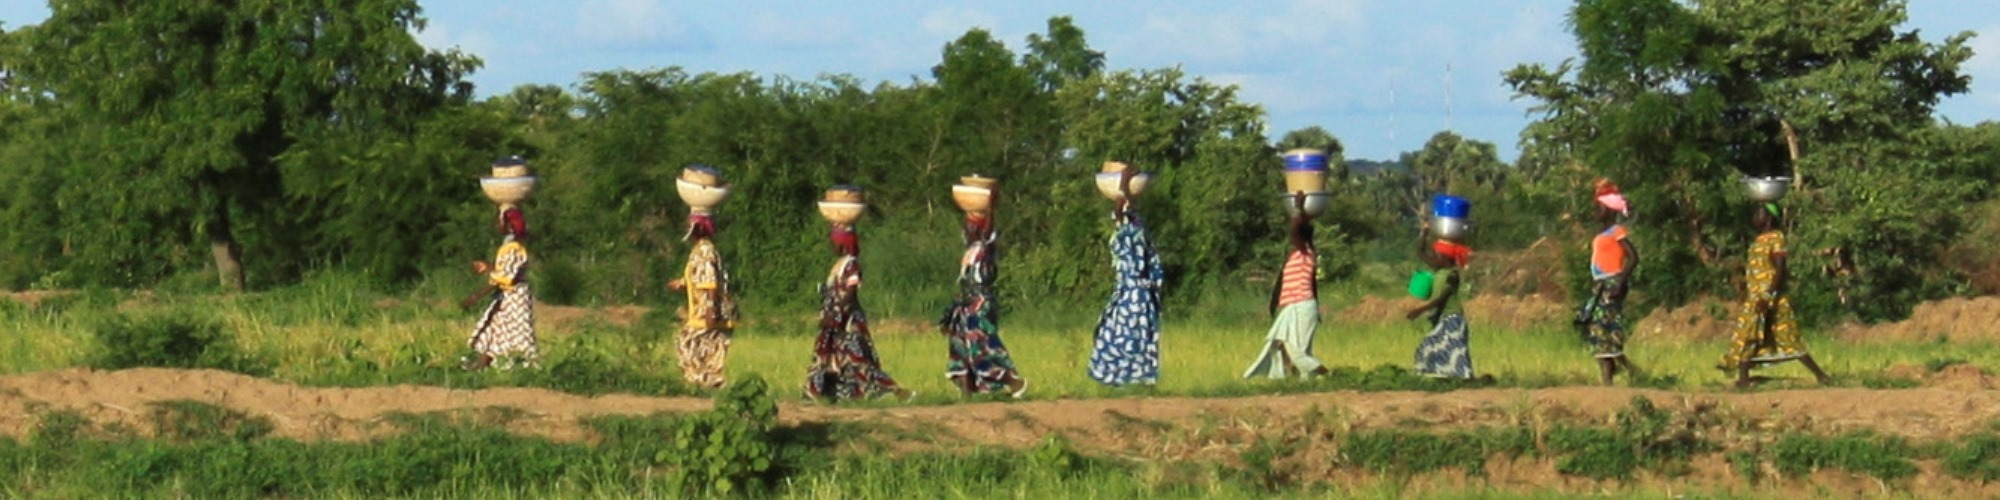 women rice farmers in benin